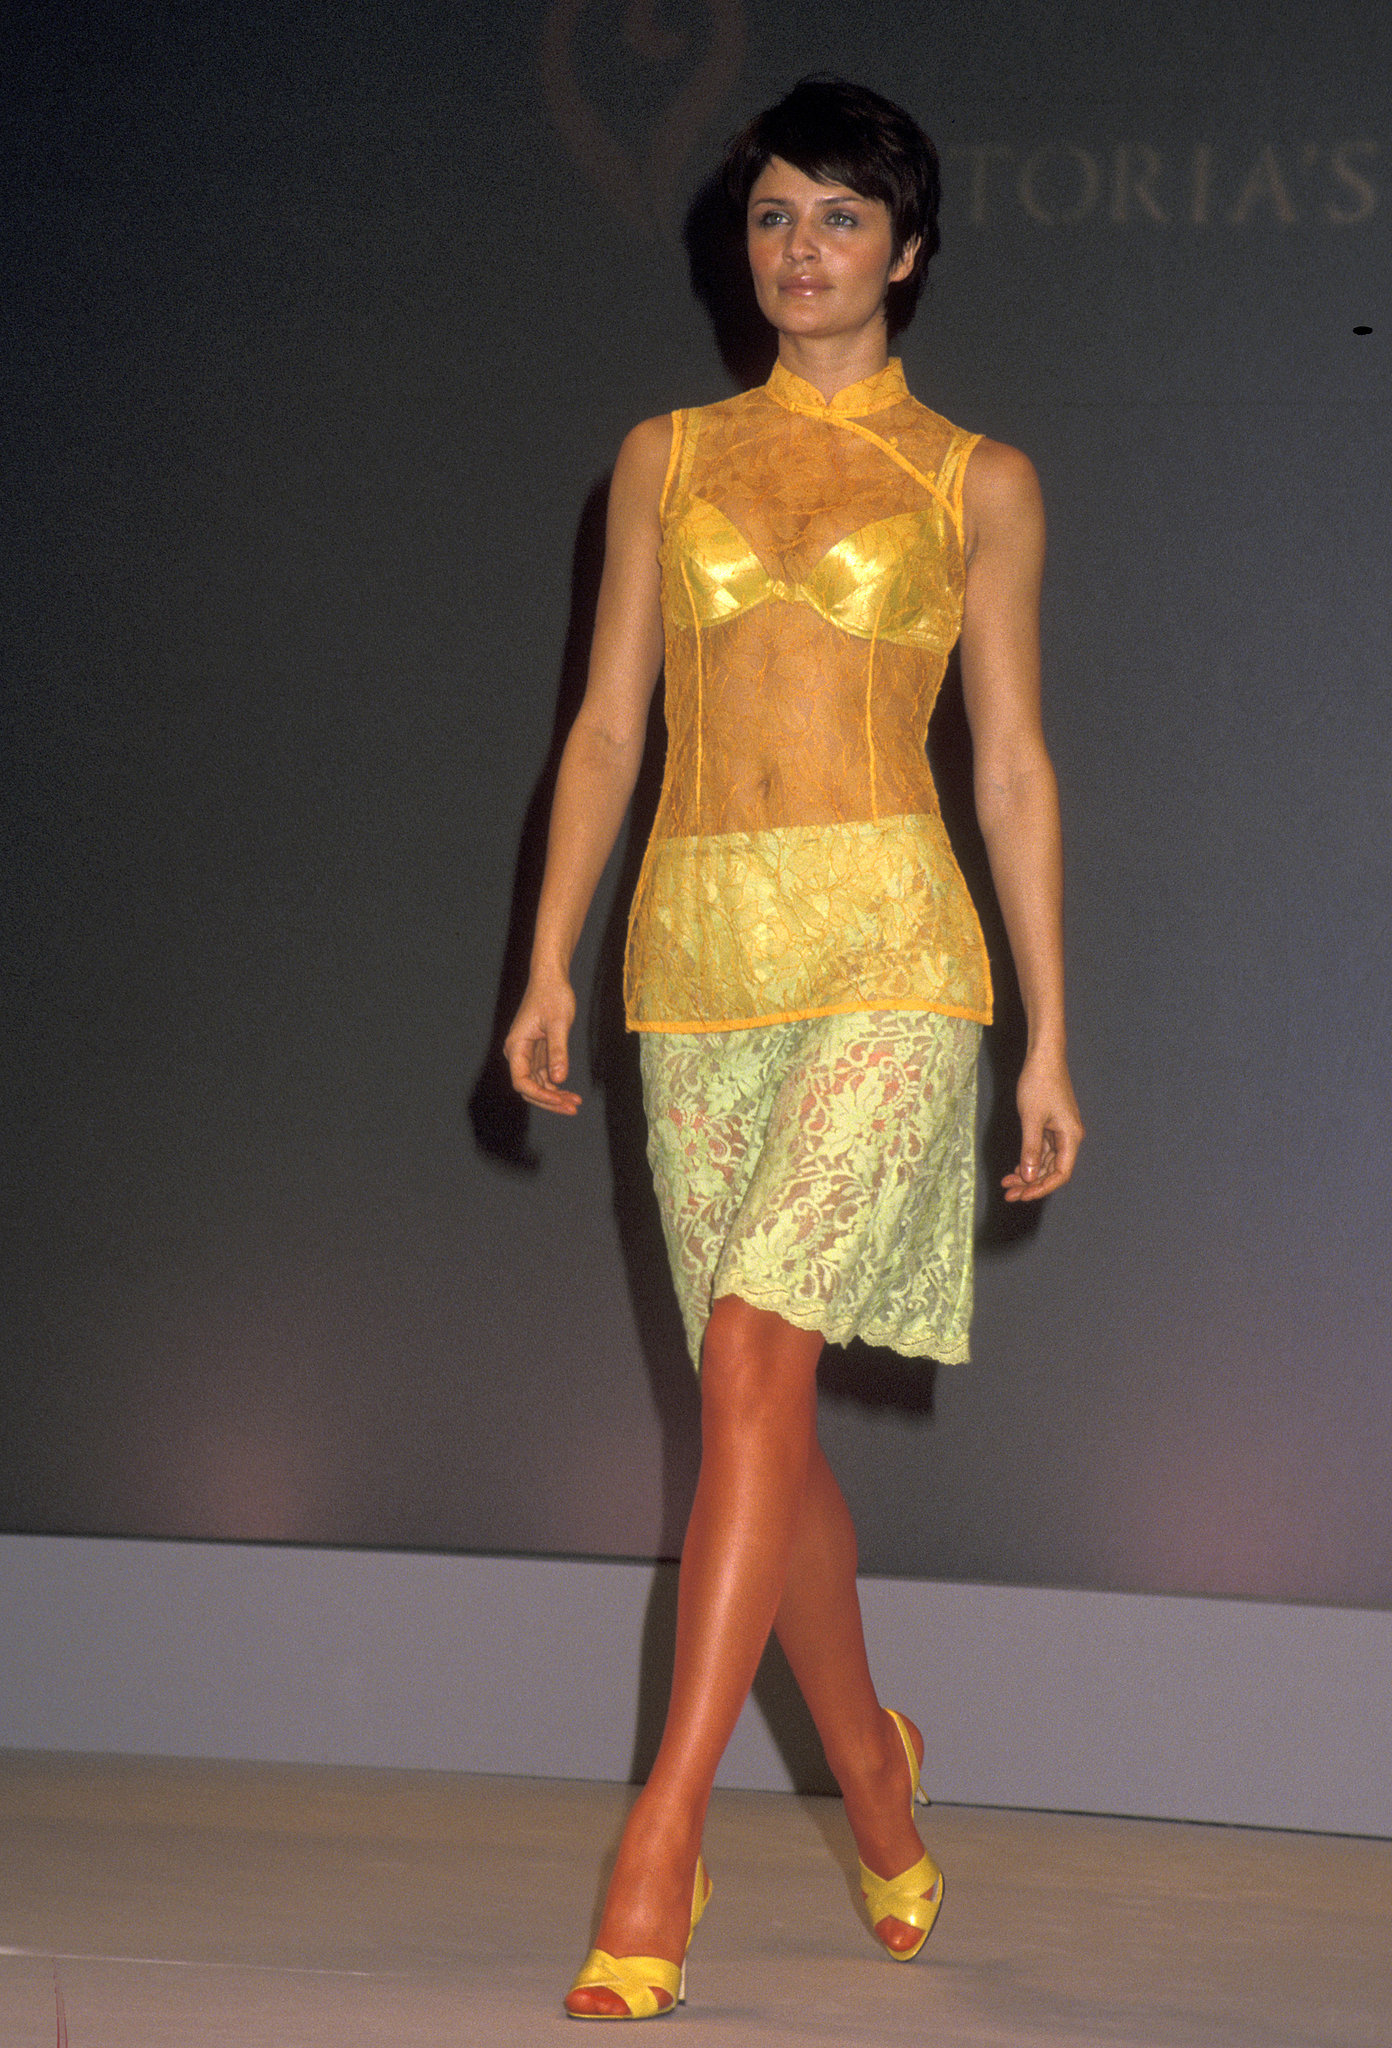 Helena Christensen donned a sheer yellow top and lace skirt on the 1997 runway.